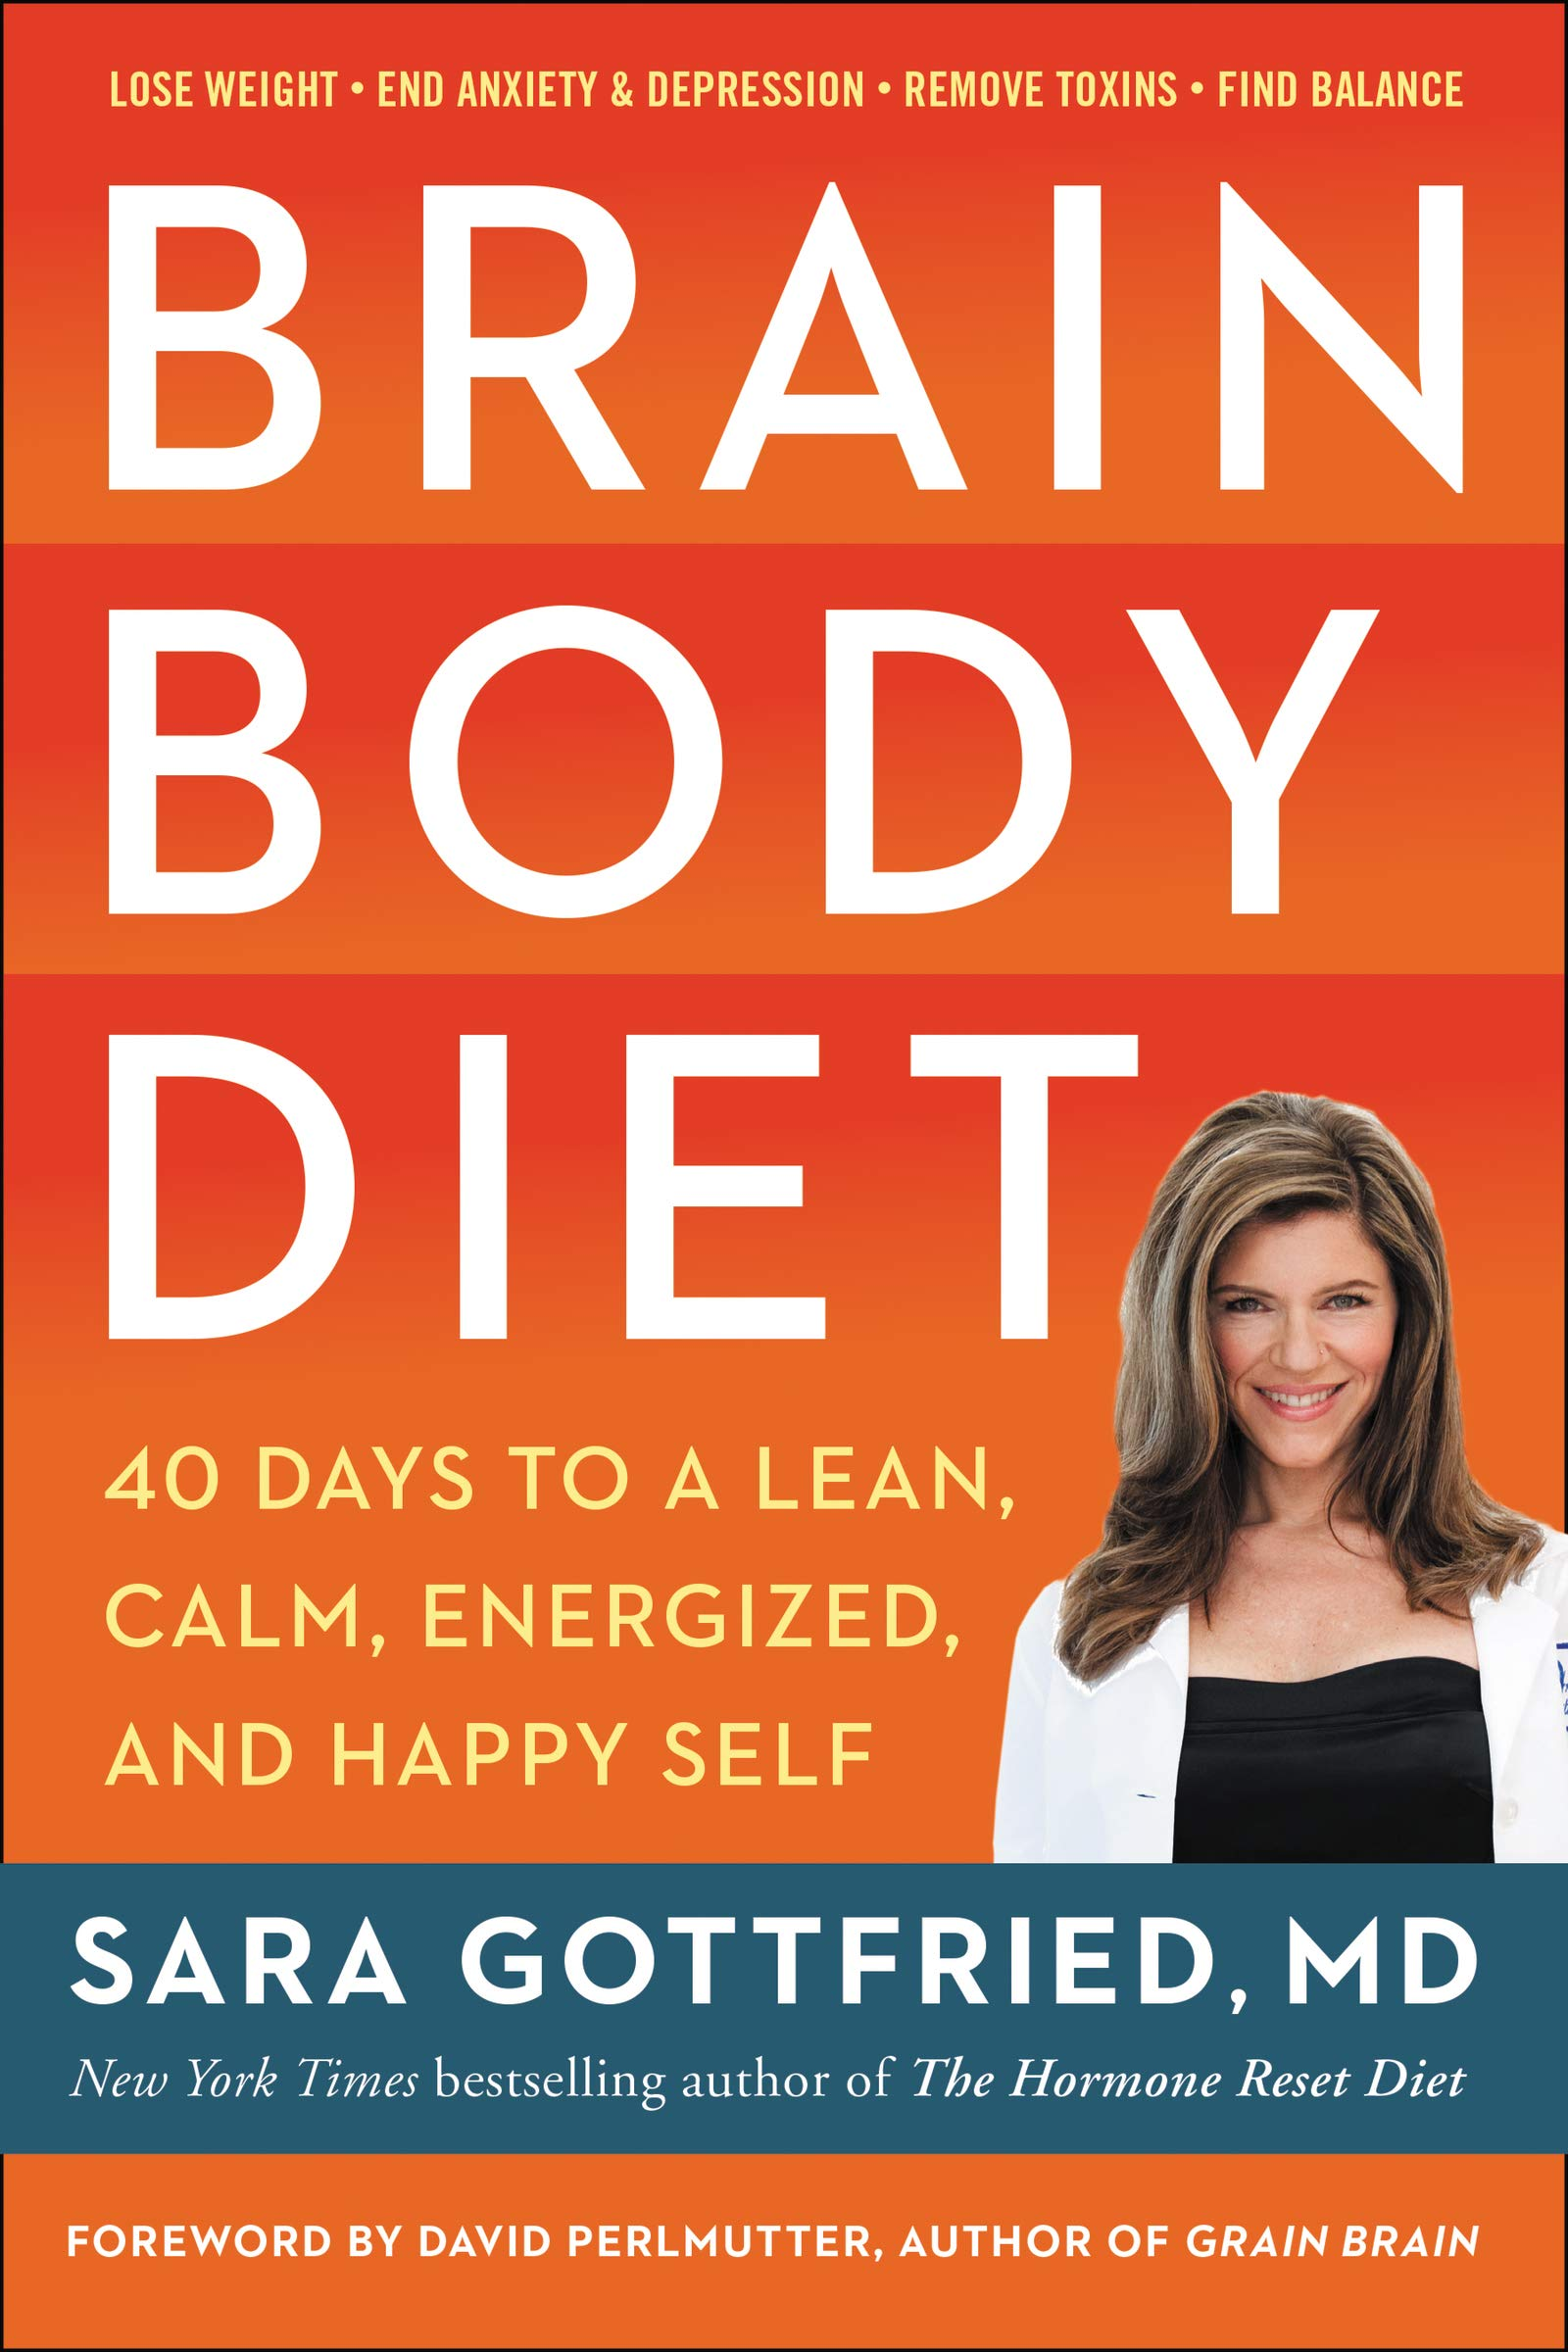 Buy Brain Body Diet Now!